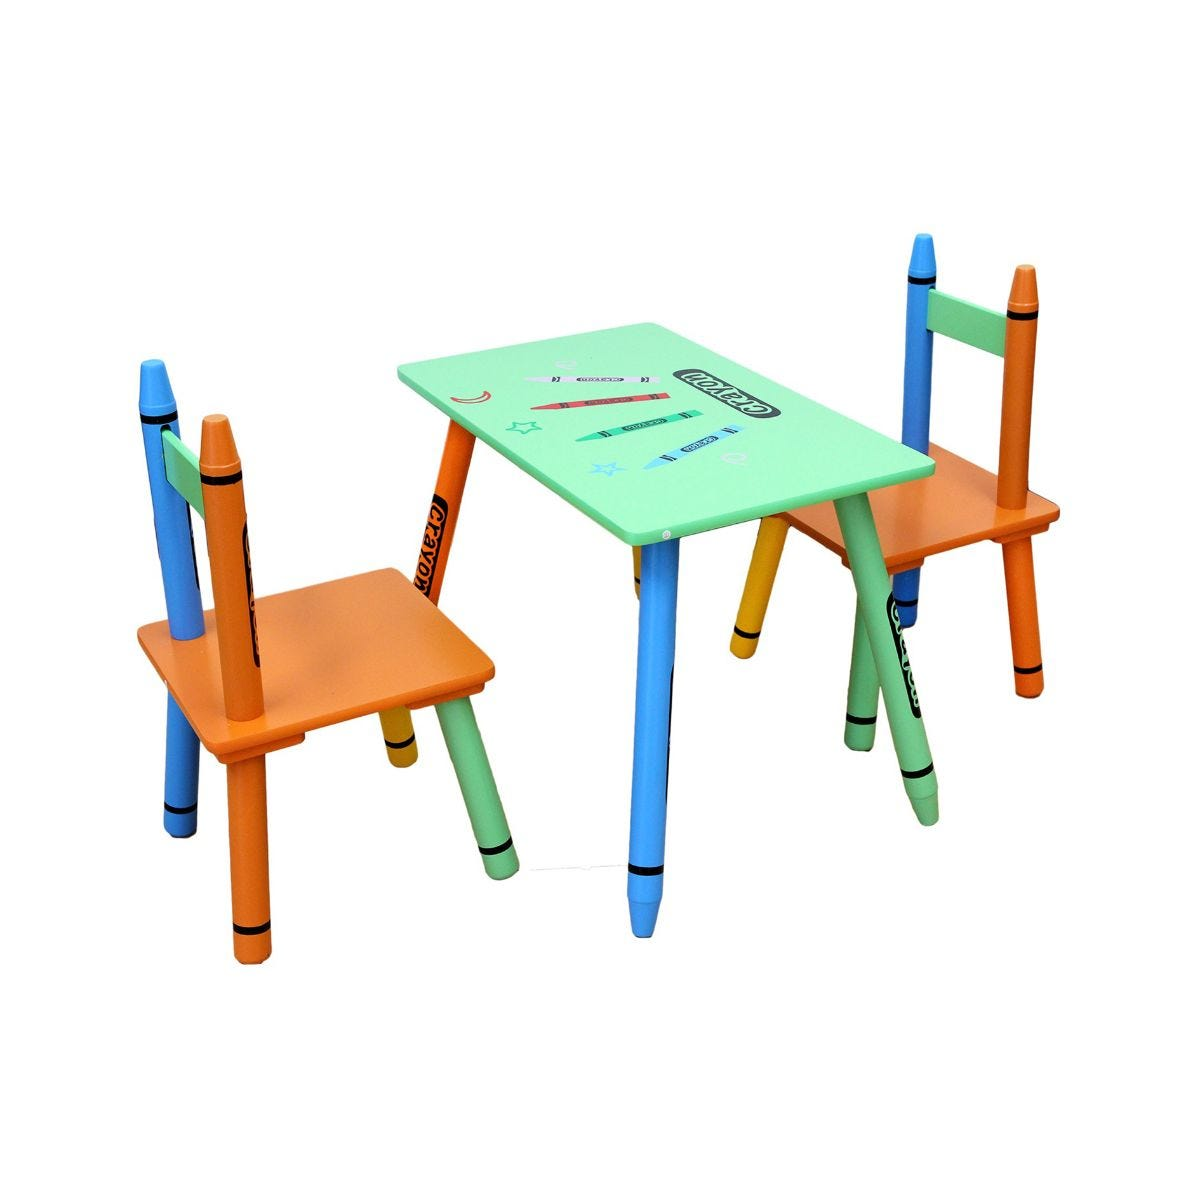 8dd42263dc12 Kids Table   Chairs Sets Childrens Furniture Office Chairs   Seating  Furniture   Storage - Ryman